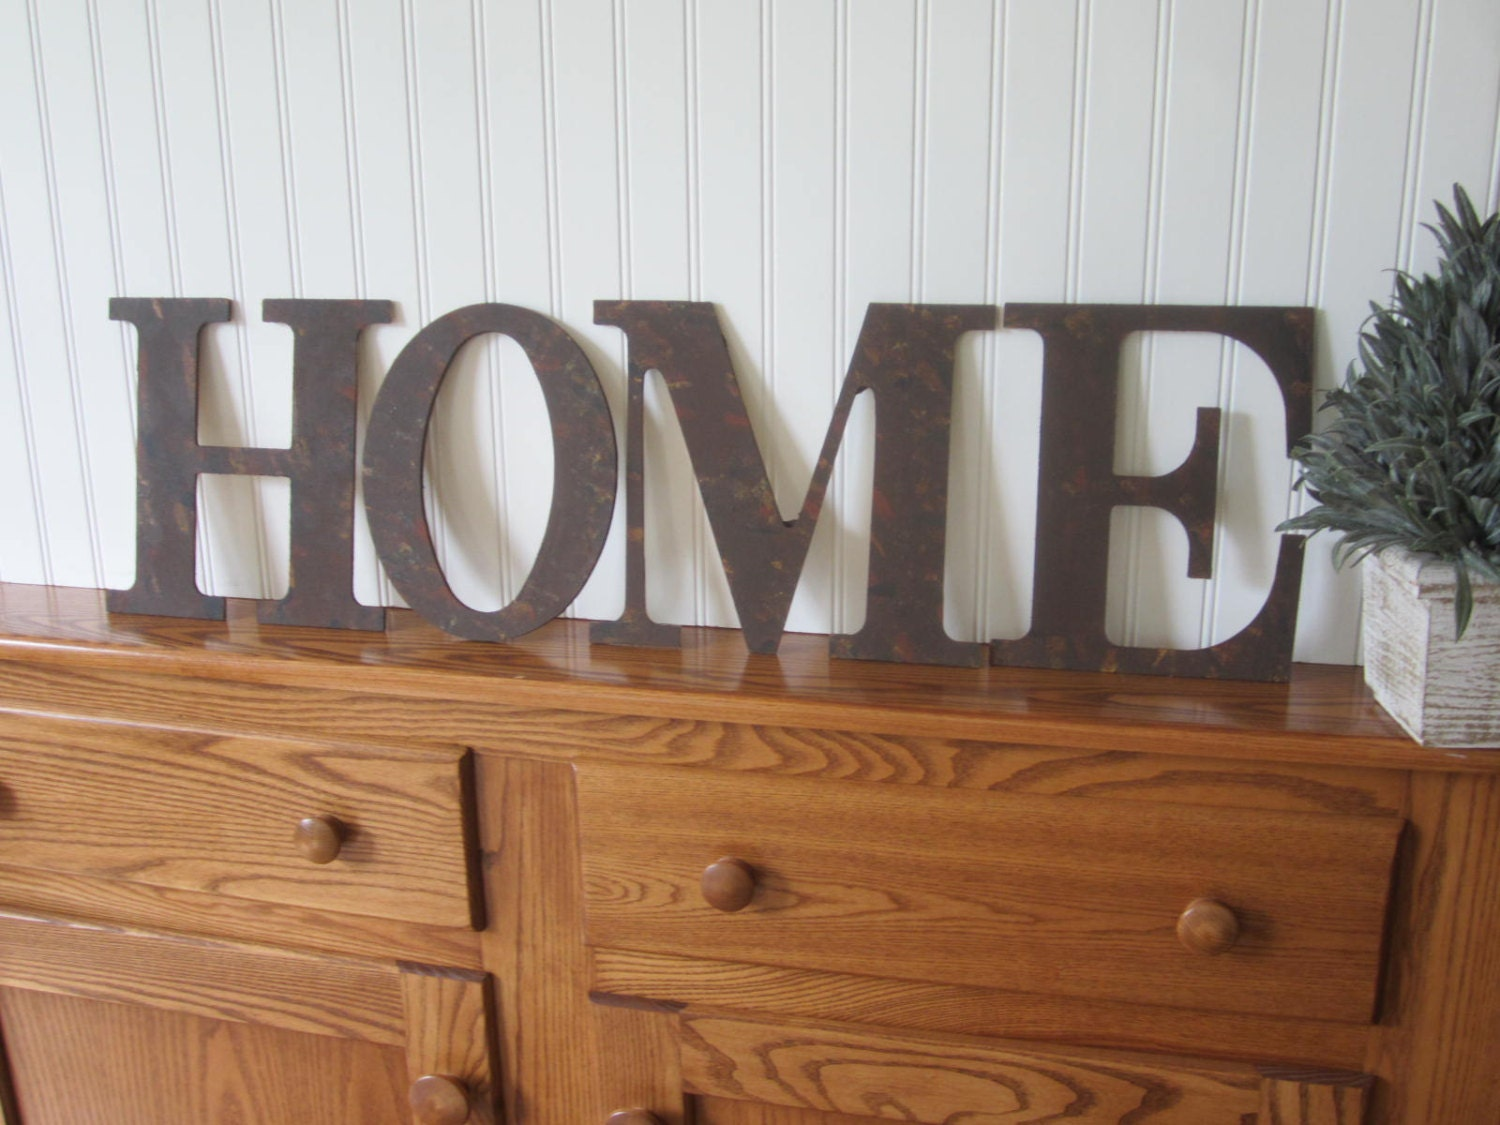 Vintage Style Home Sign Rusty Metal Letters Home Home Sign